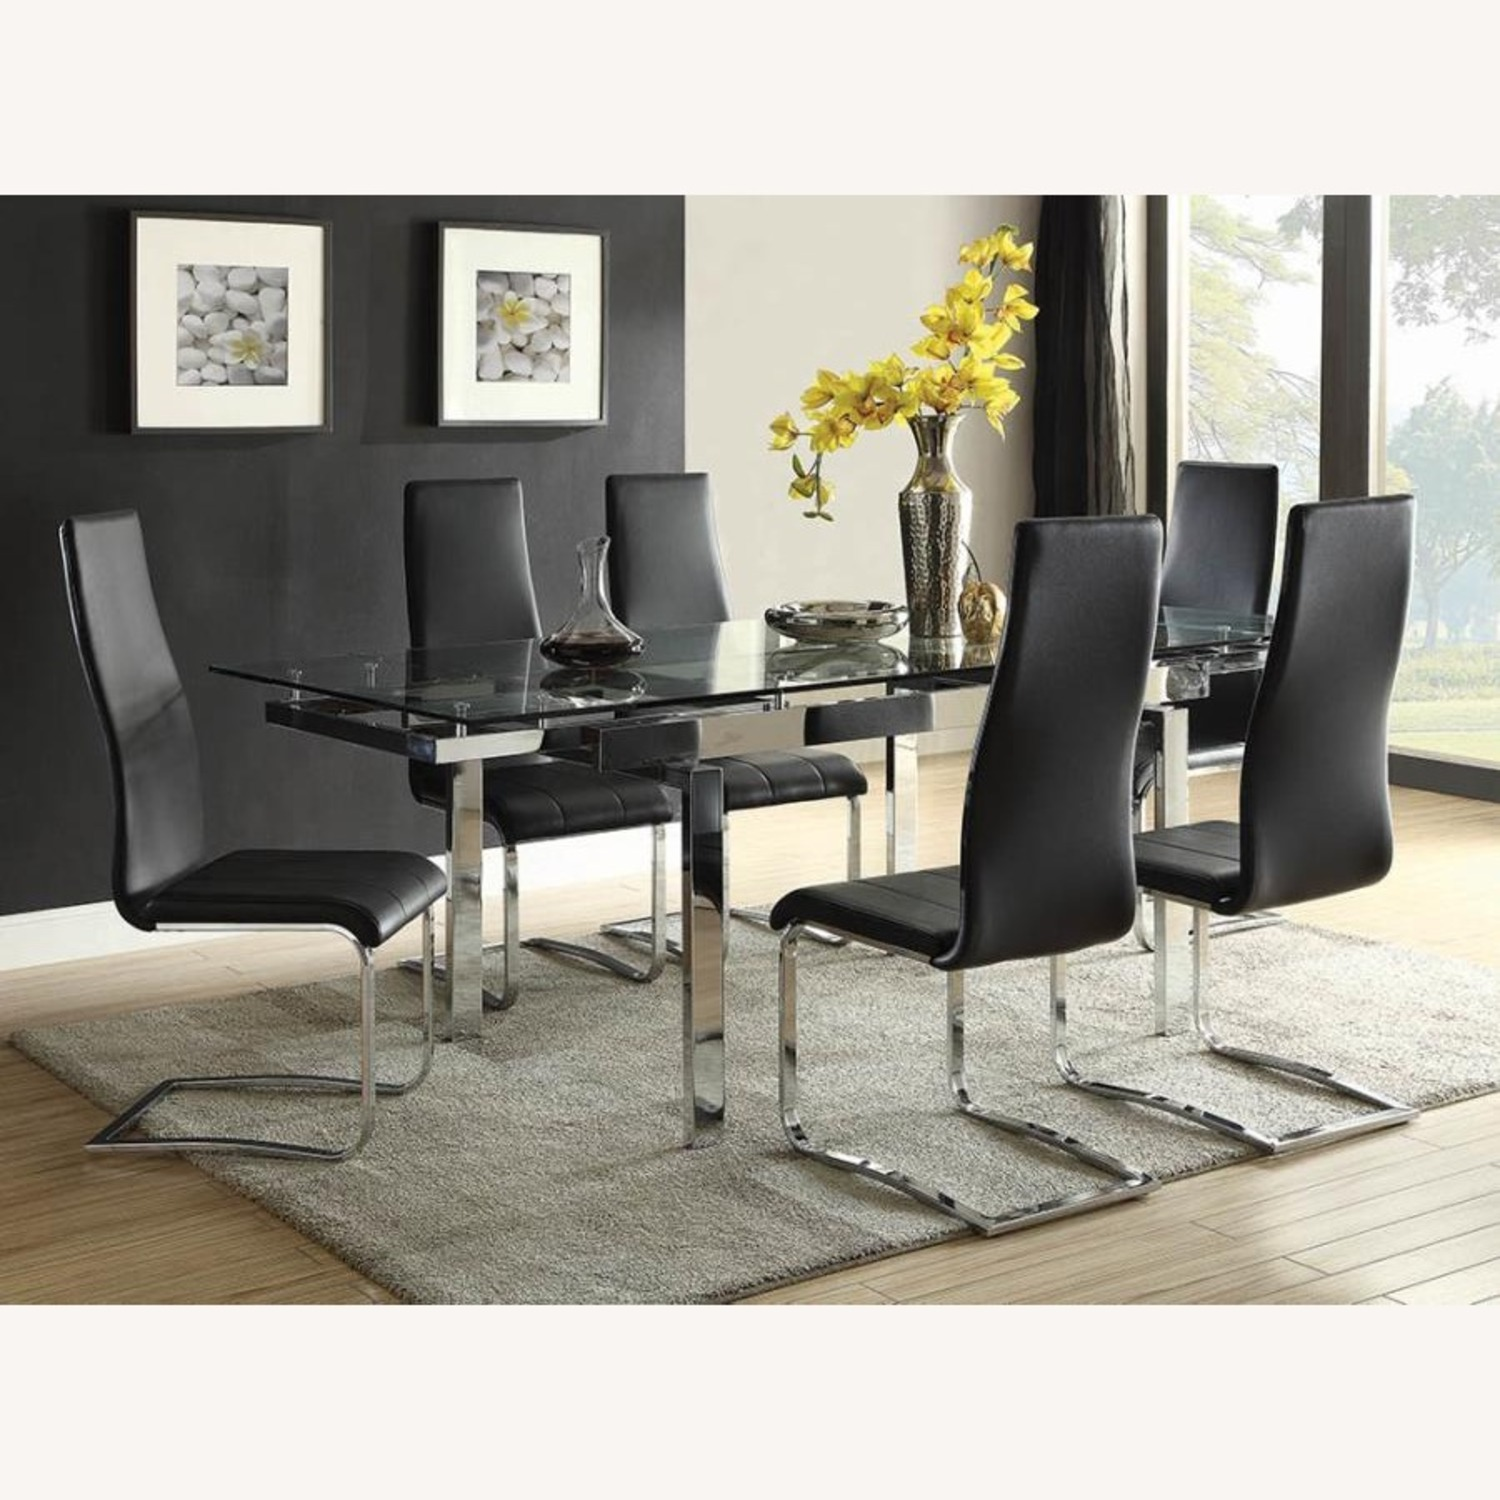 Iconic Breuer Style Side Chair In Black Leather - image-3